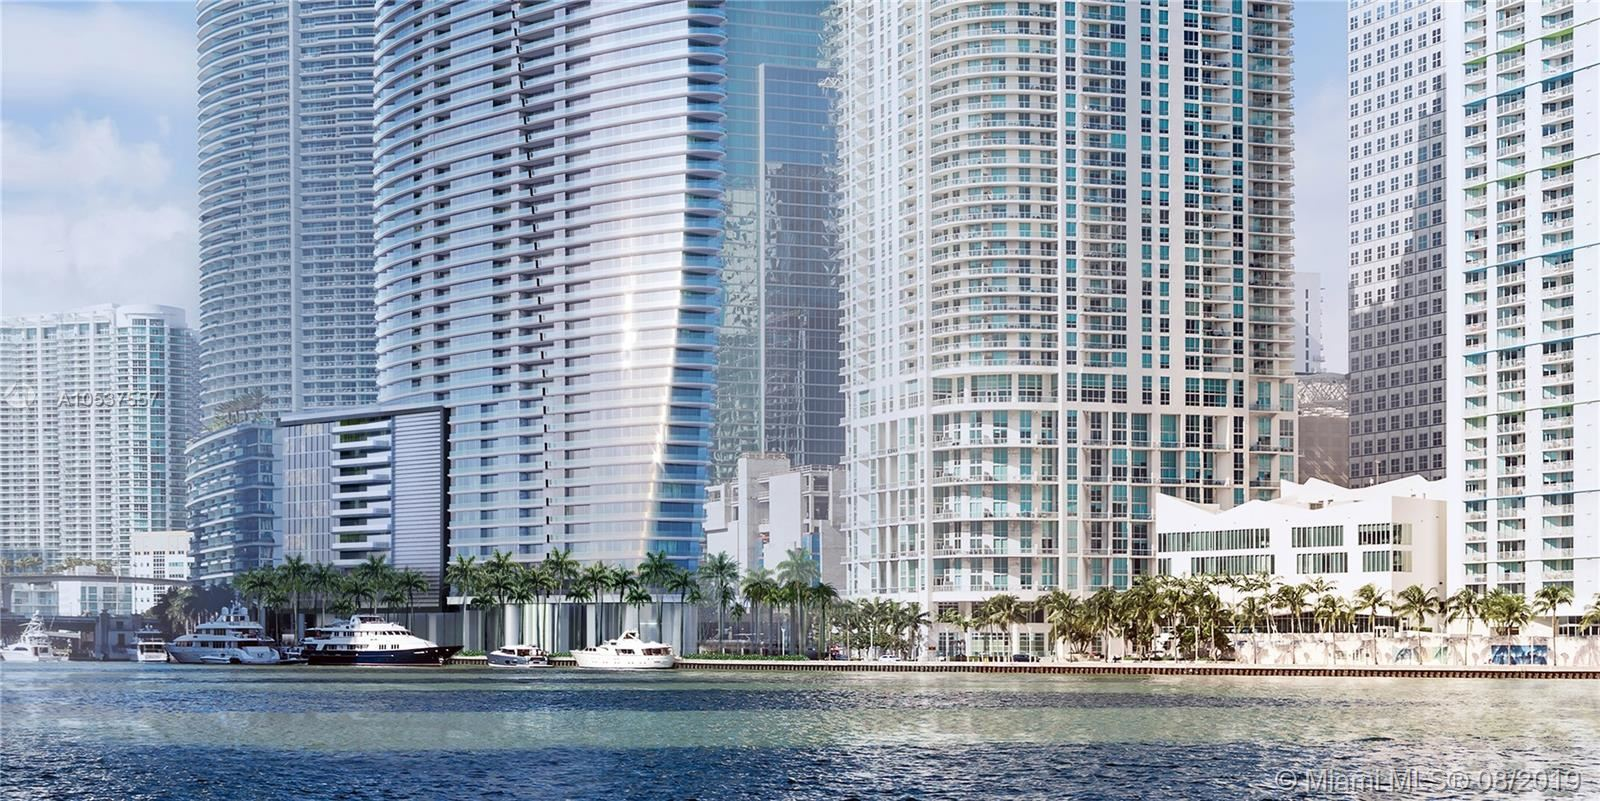 300 Biscayne Blvd Way #1201, Miami, FL 33131 - #: A10537557